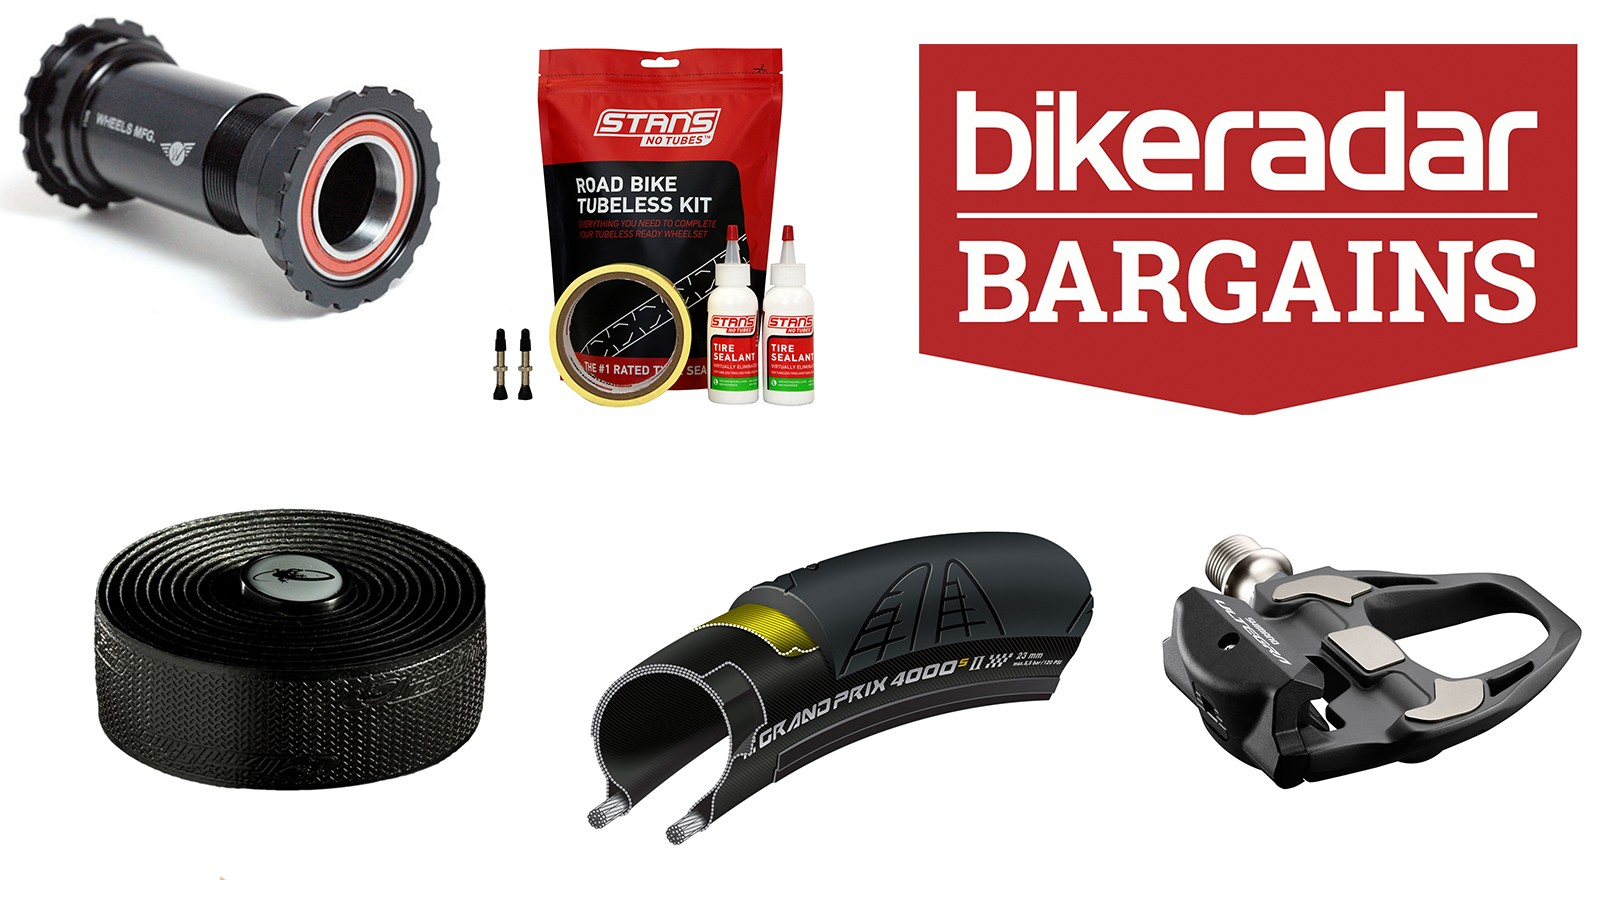 For this week's edition of BikeRadar Bargains we've pulled together deals on the best upgrades for your road bike